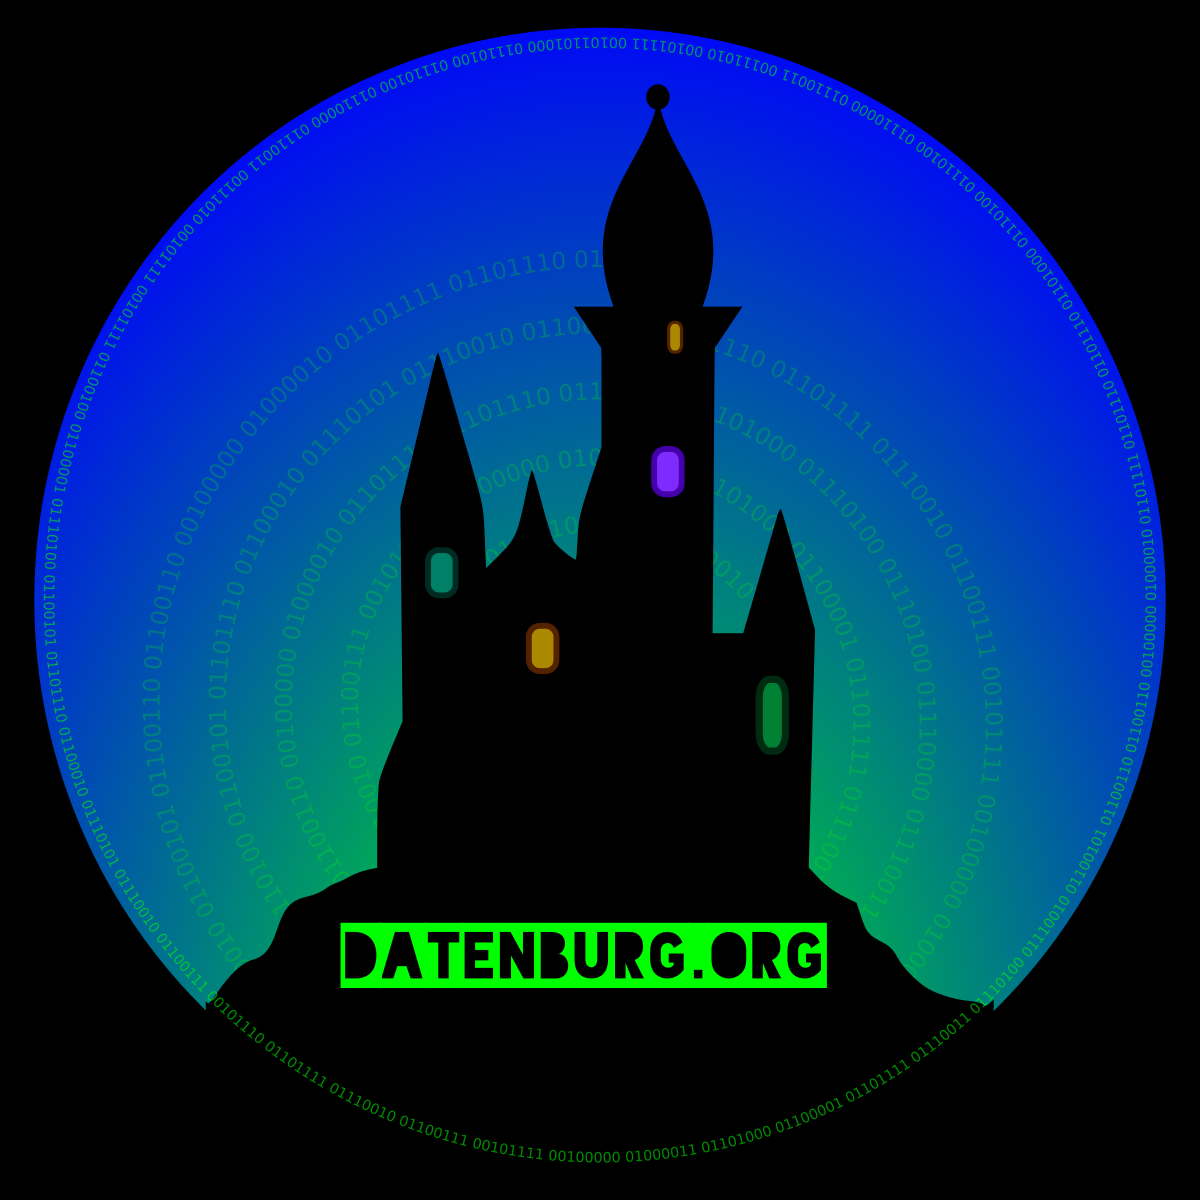 https://datenburg.org